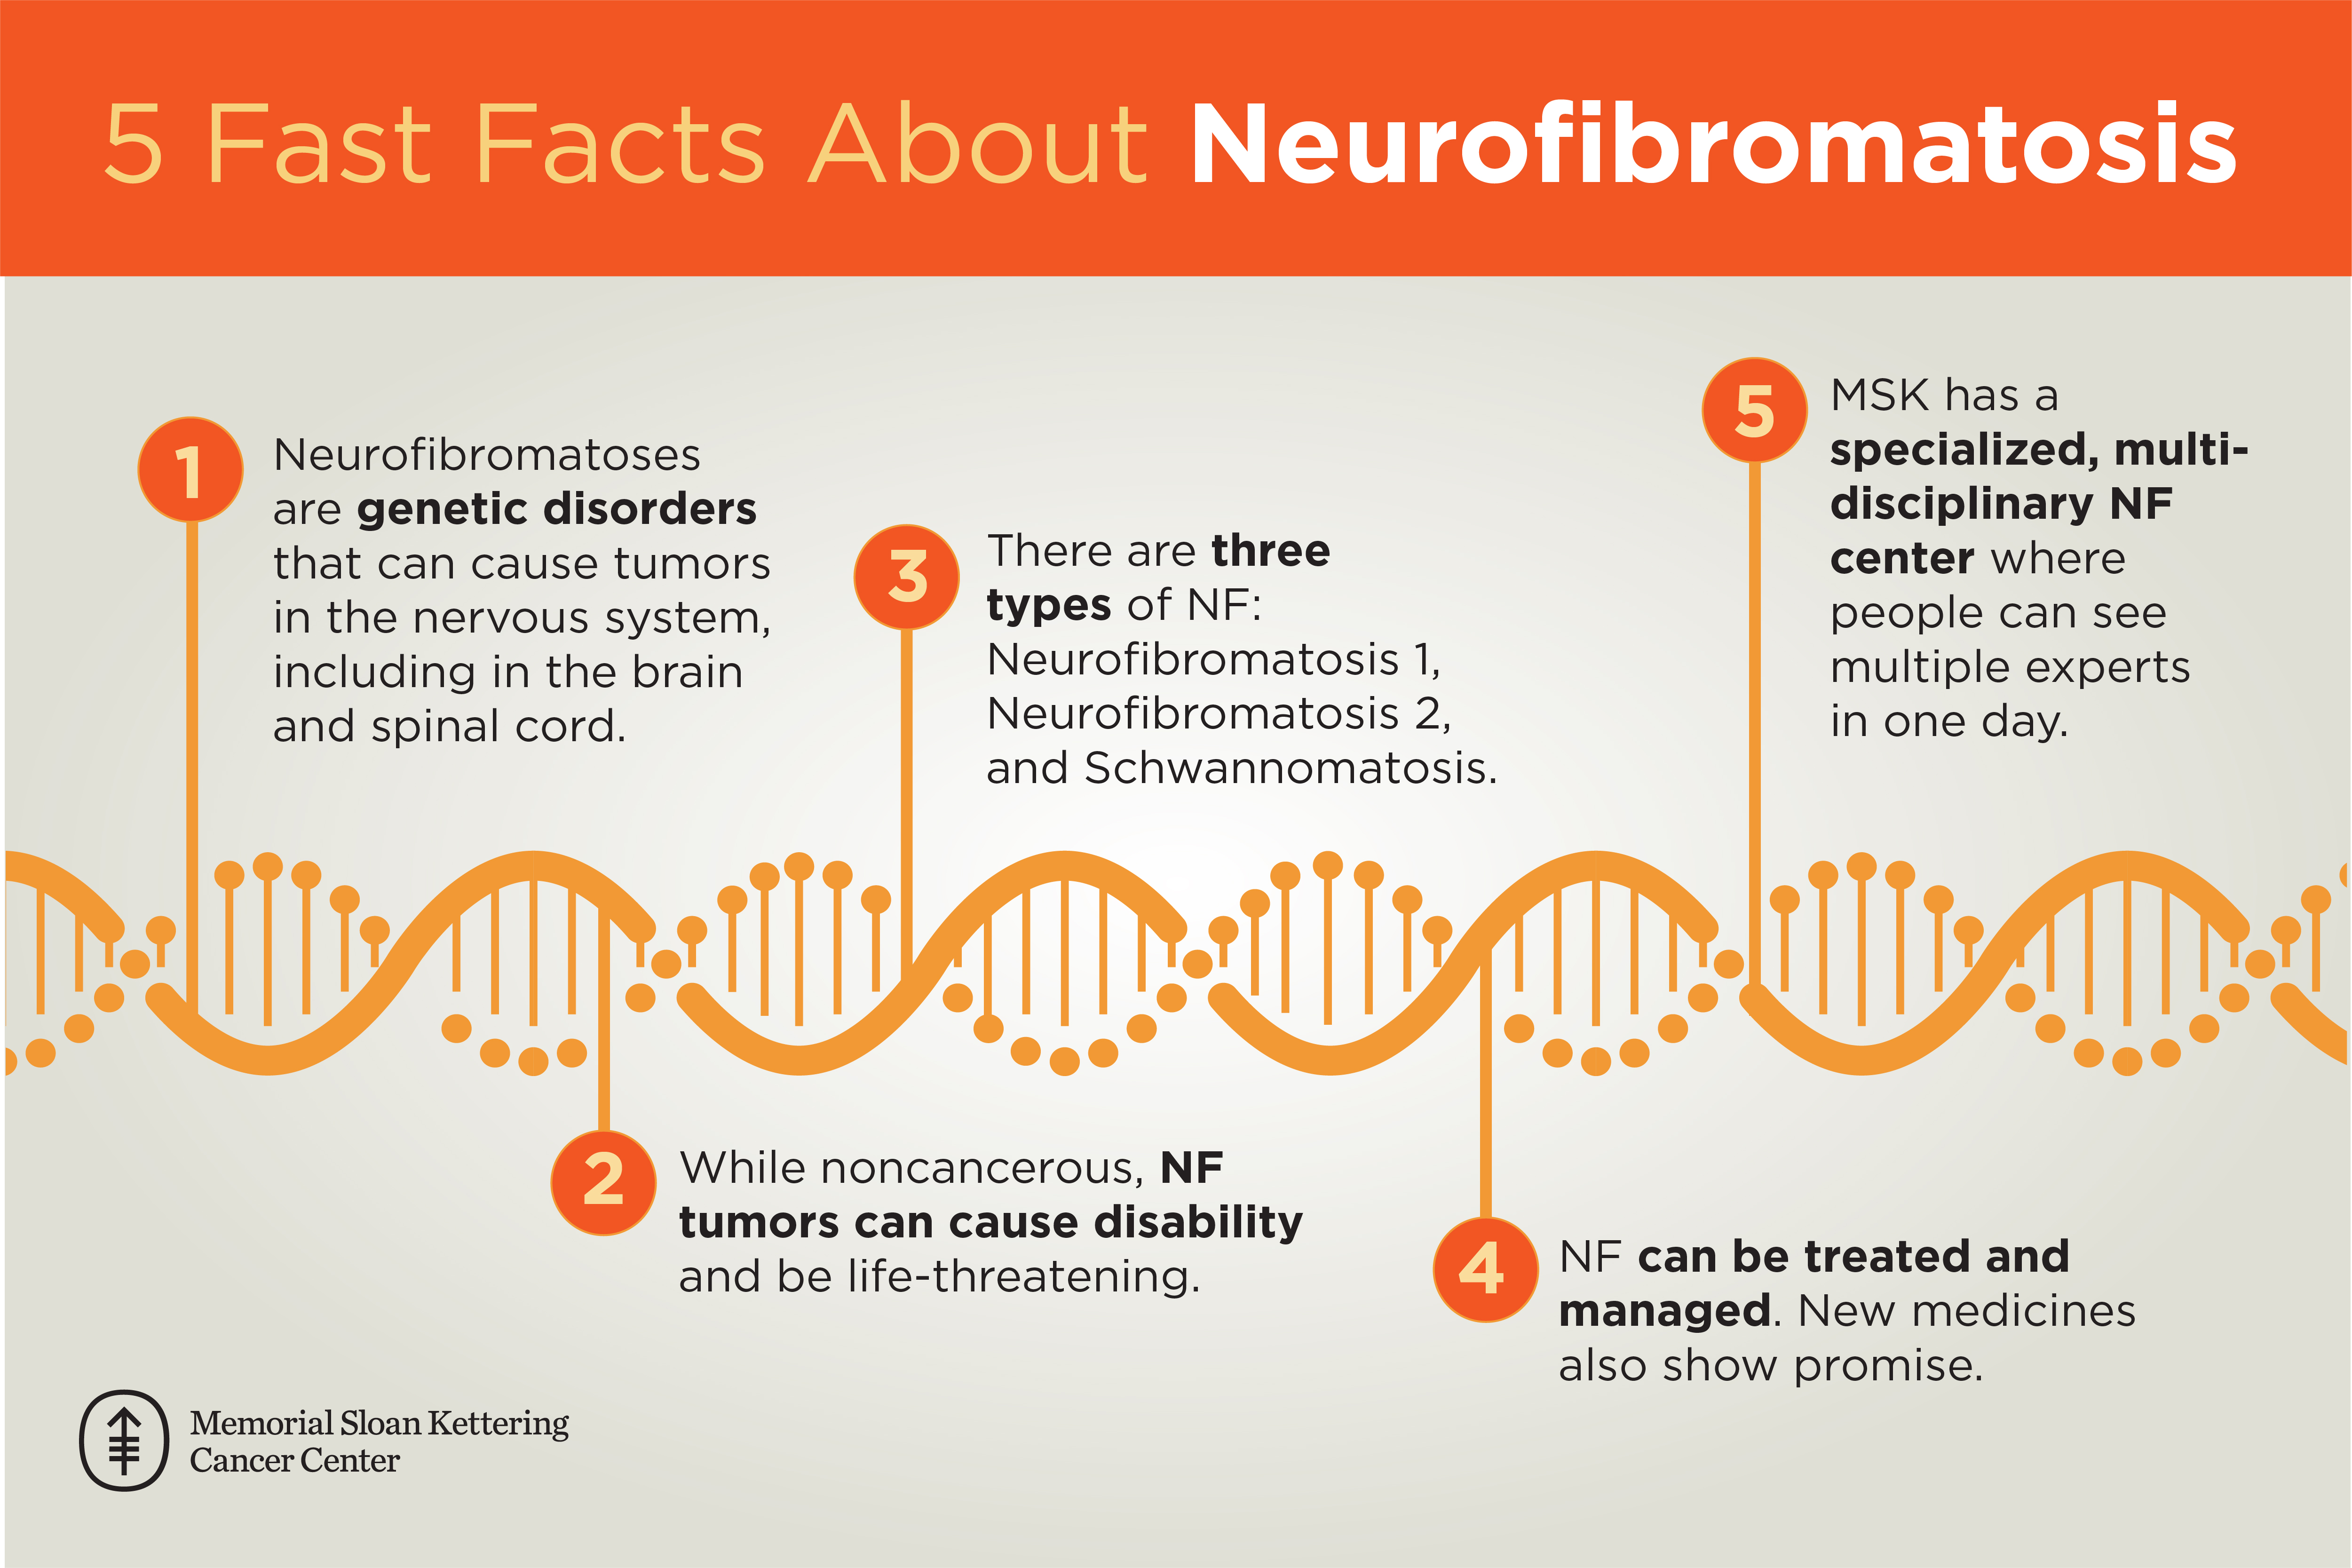 5 facts about Neurofibromatosis including the cause, types and treatment.